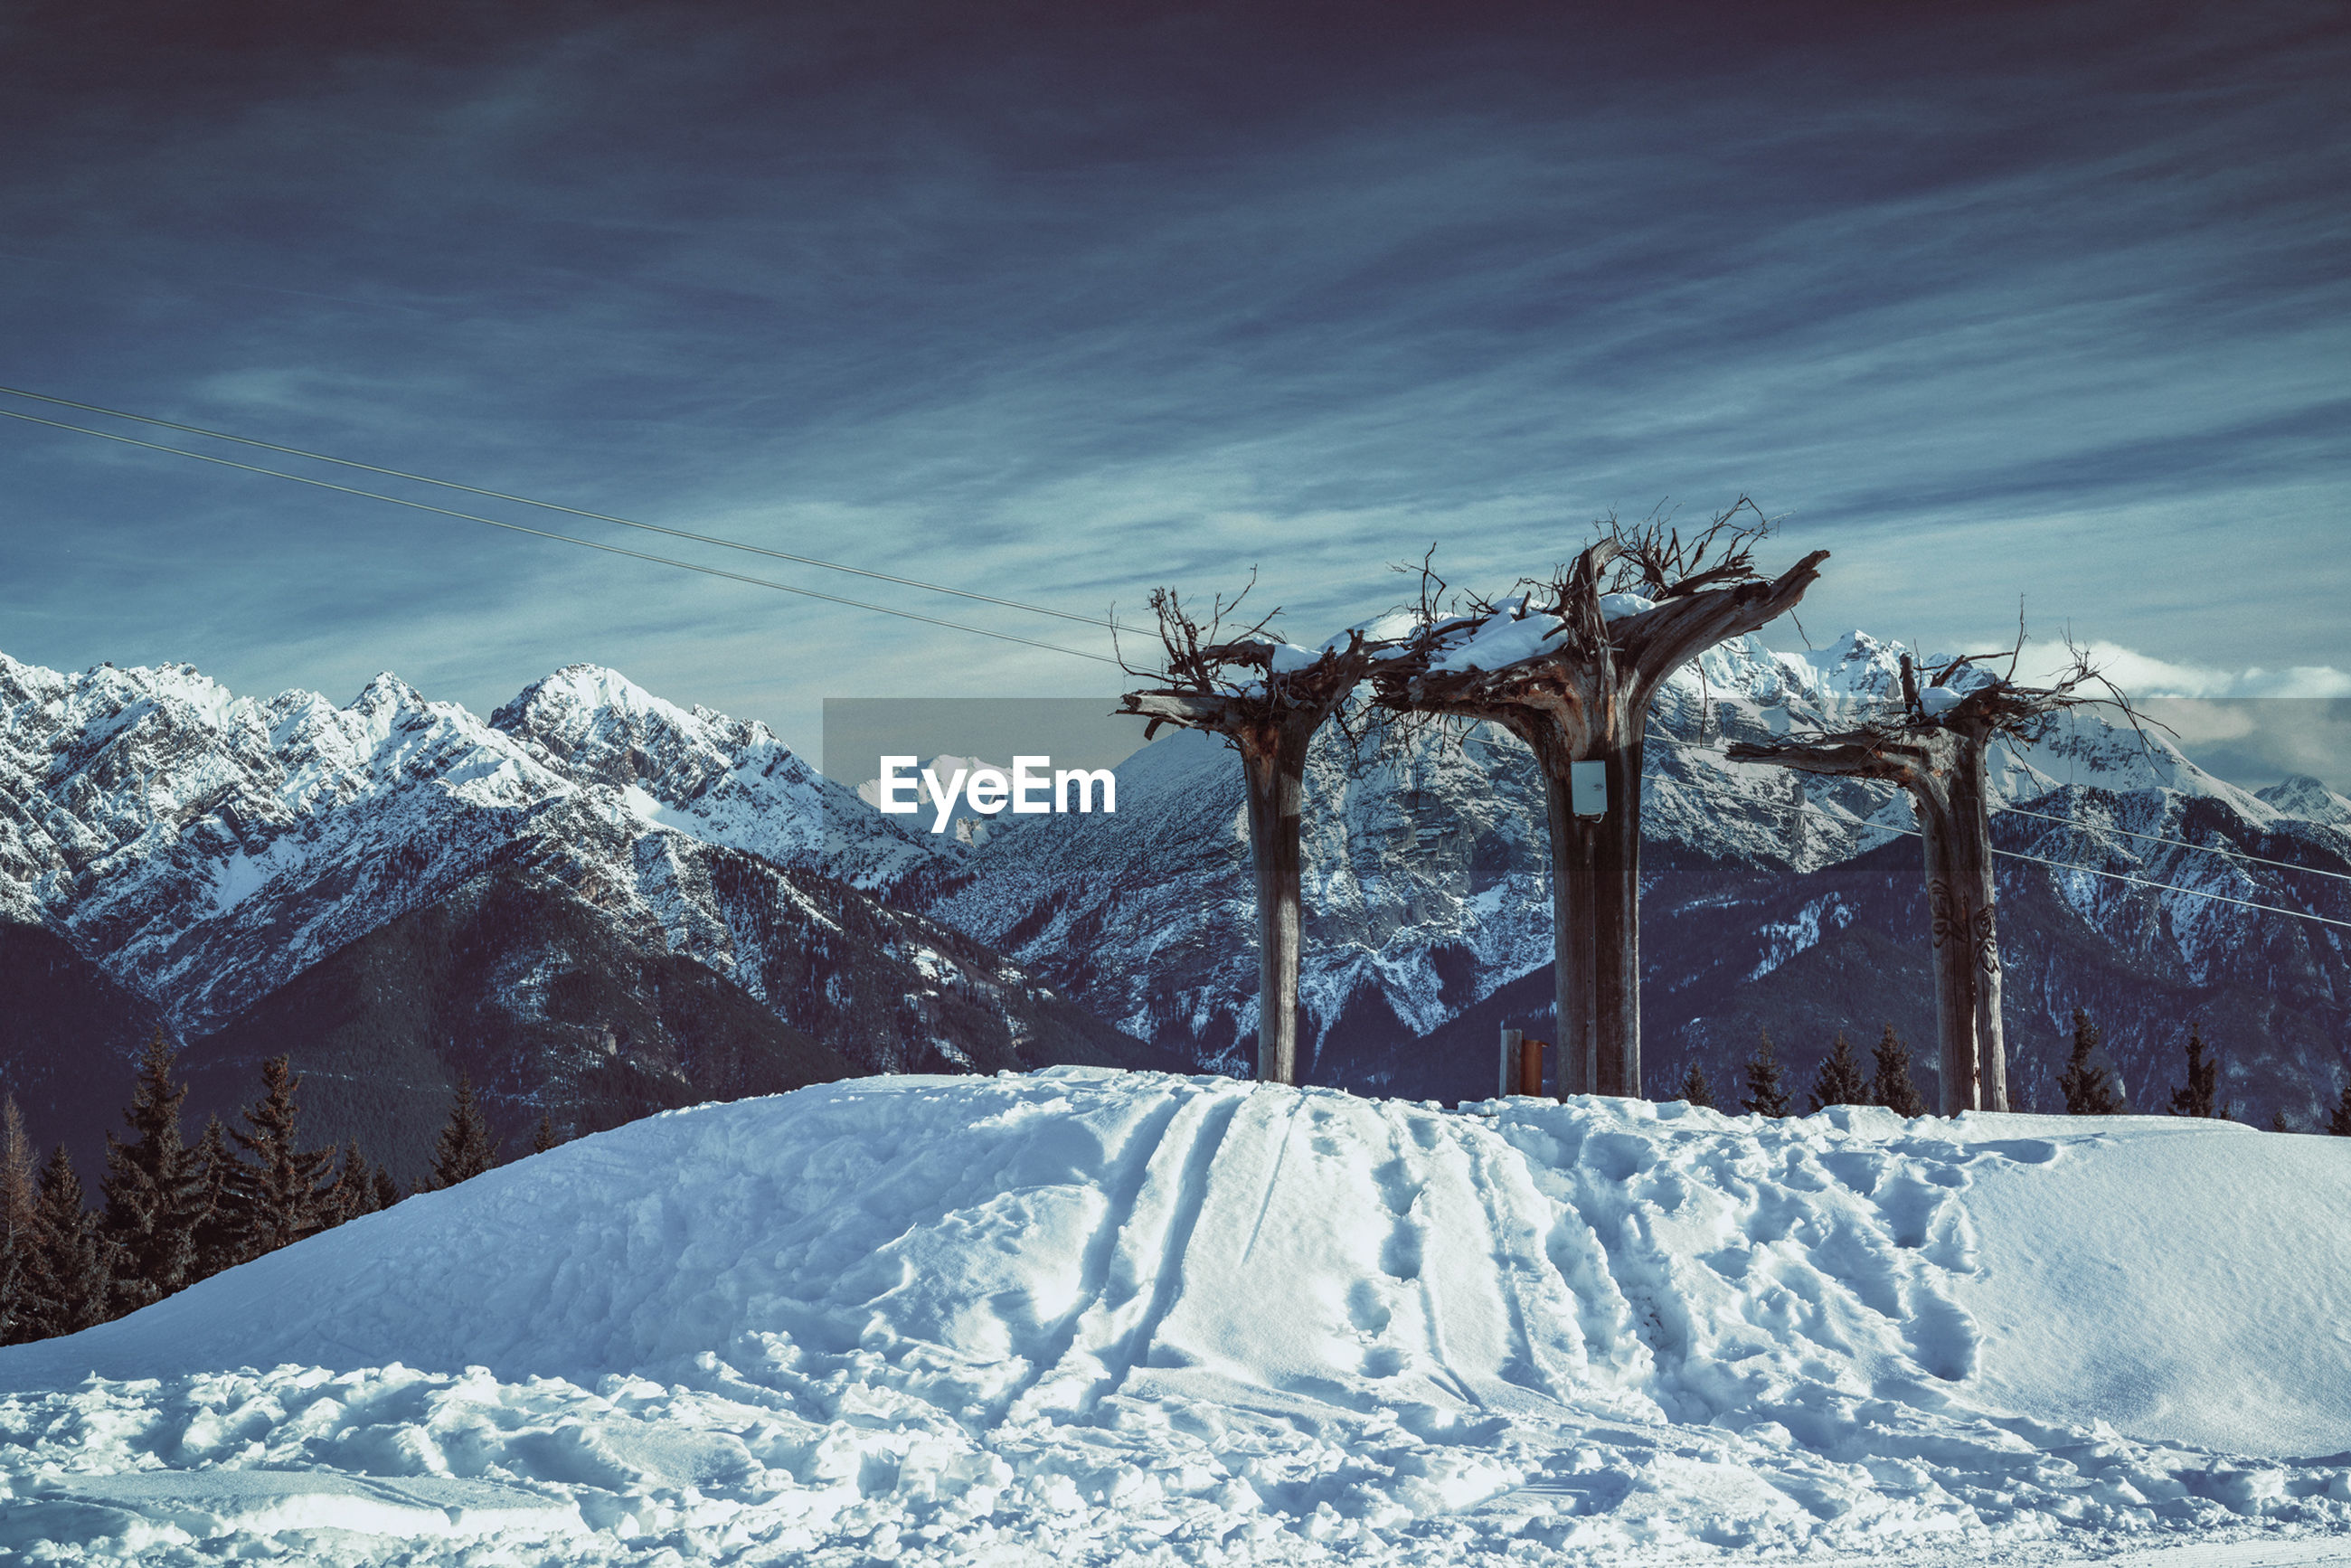 snow, winter, cold temperature, weather, nature, sky, beauty in nature, no people, day, scenics, mountain, outdoors, landscape, tree